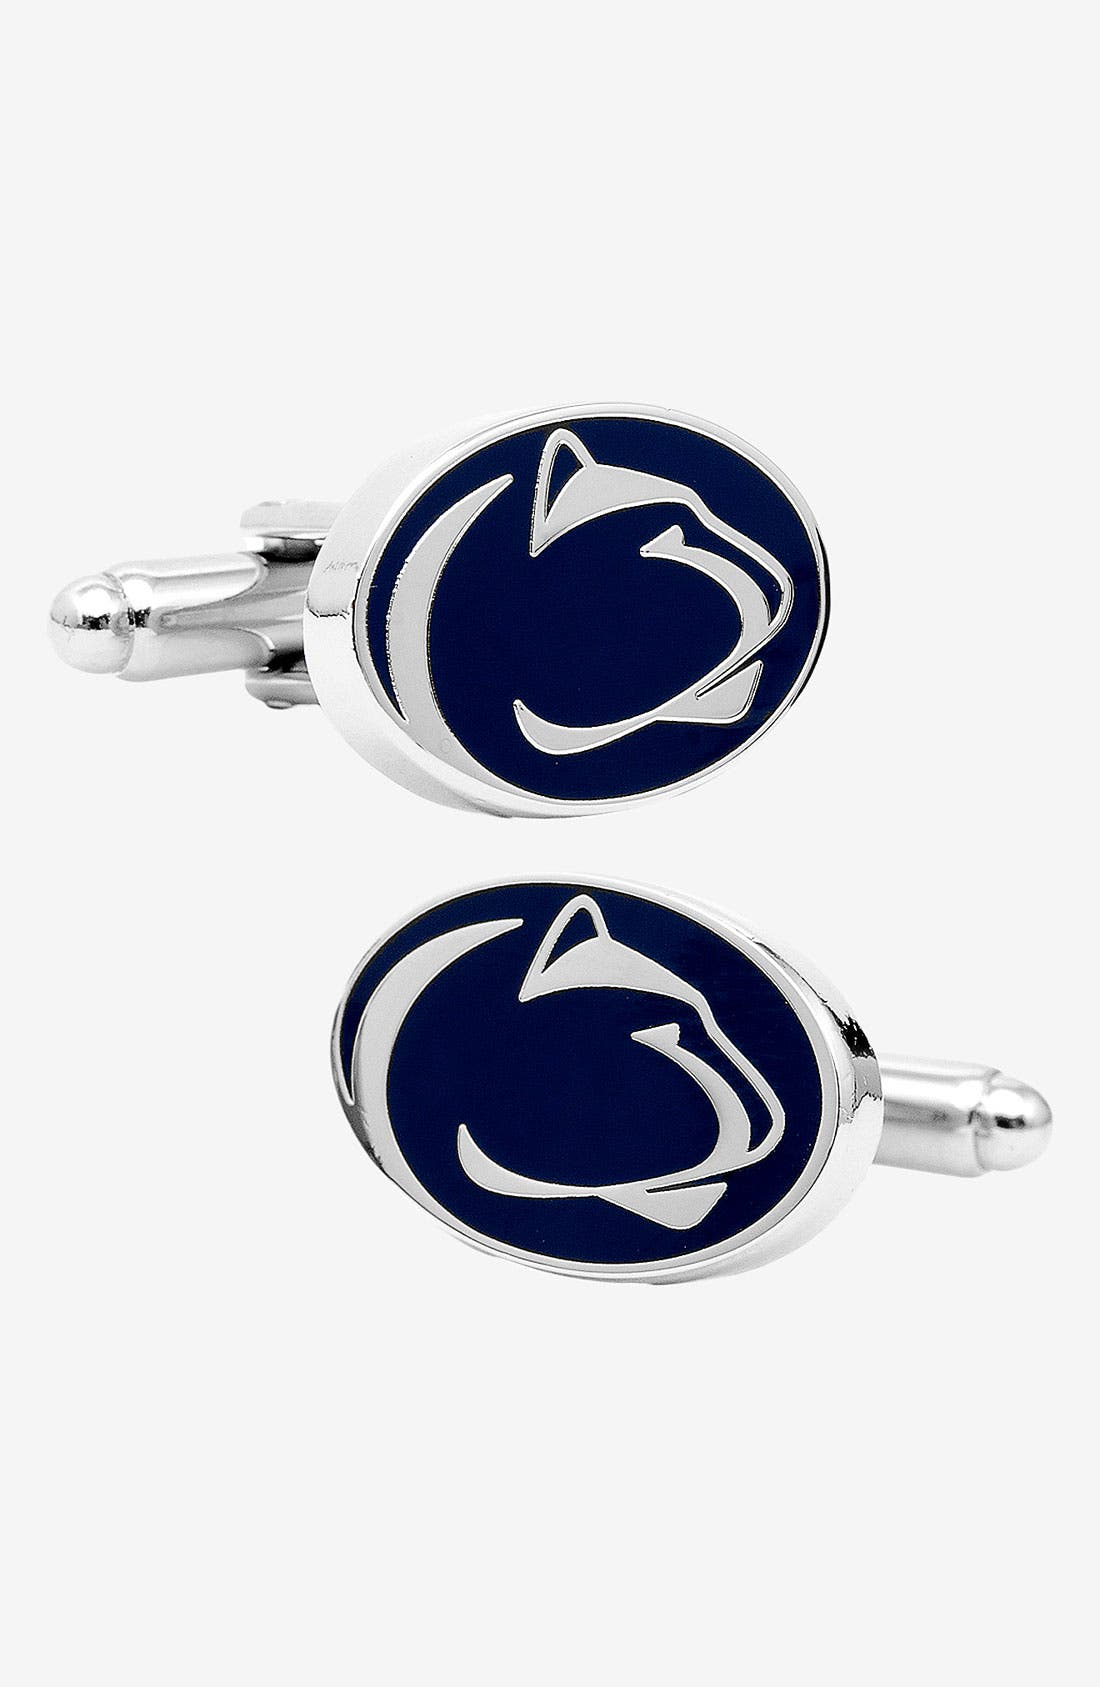 'Penn State University Nittany Lions' Cuff Links,                             Main thumbnail 1, color,                             400